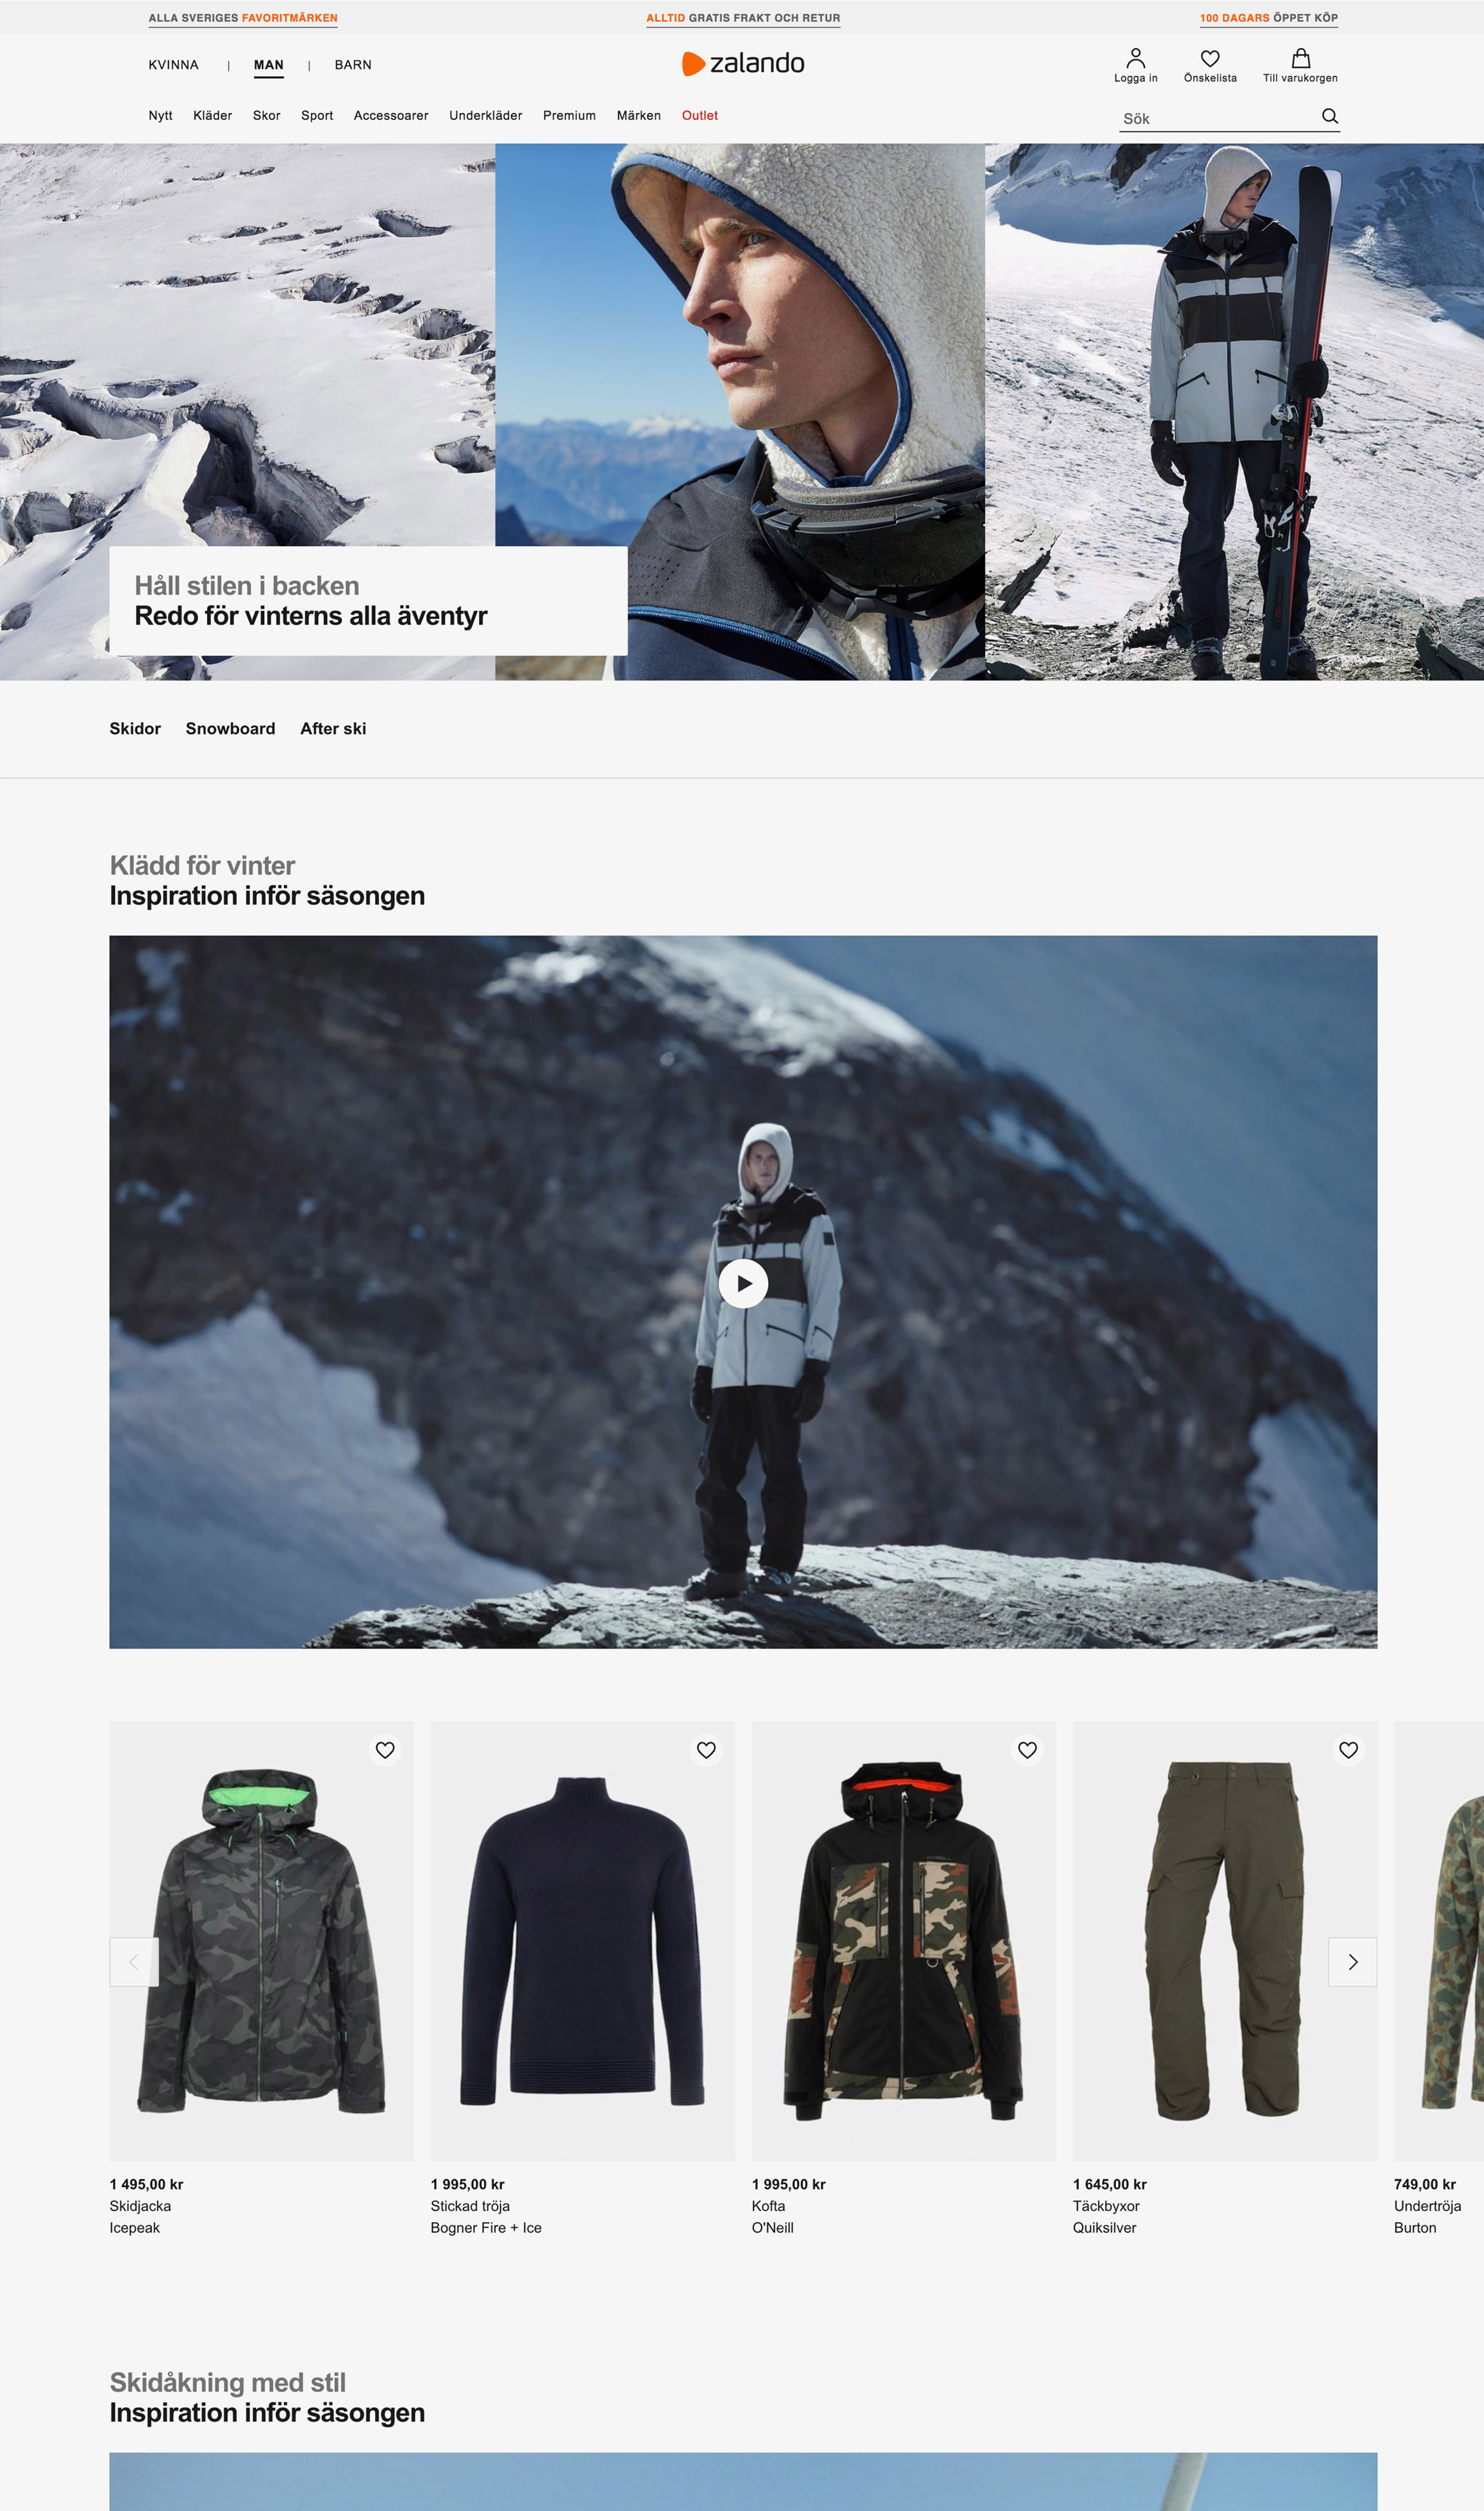 b8082cfe ... Design & Creative direction Zalando Winter Sport Campaign AW18/19